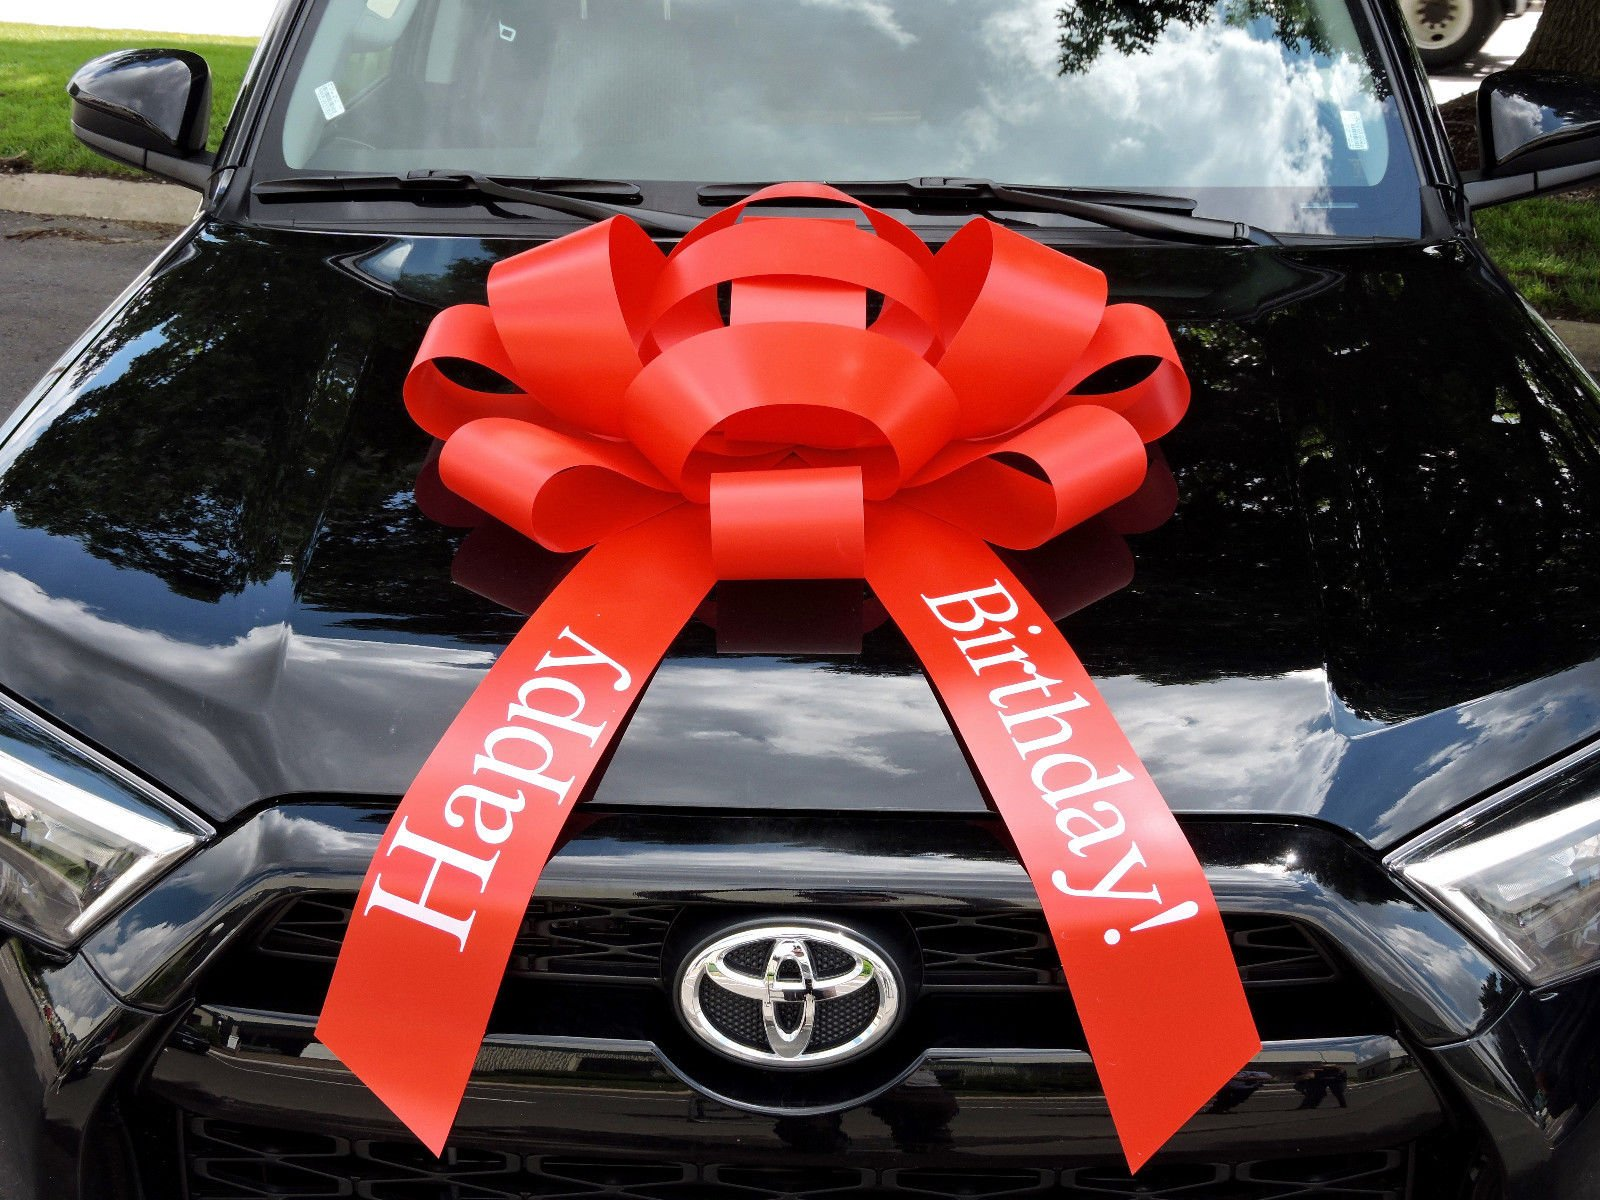 Eight24hours Red Happy Birthday Car Bow Vinyl Magnetic Back No Scratch 2.5 feet - Red